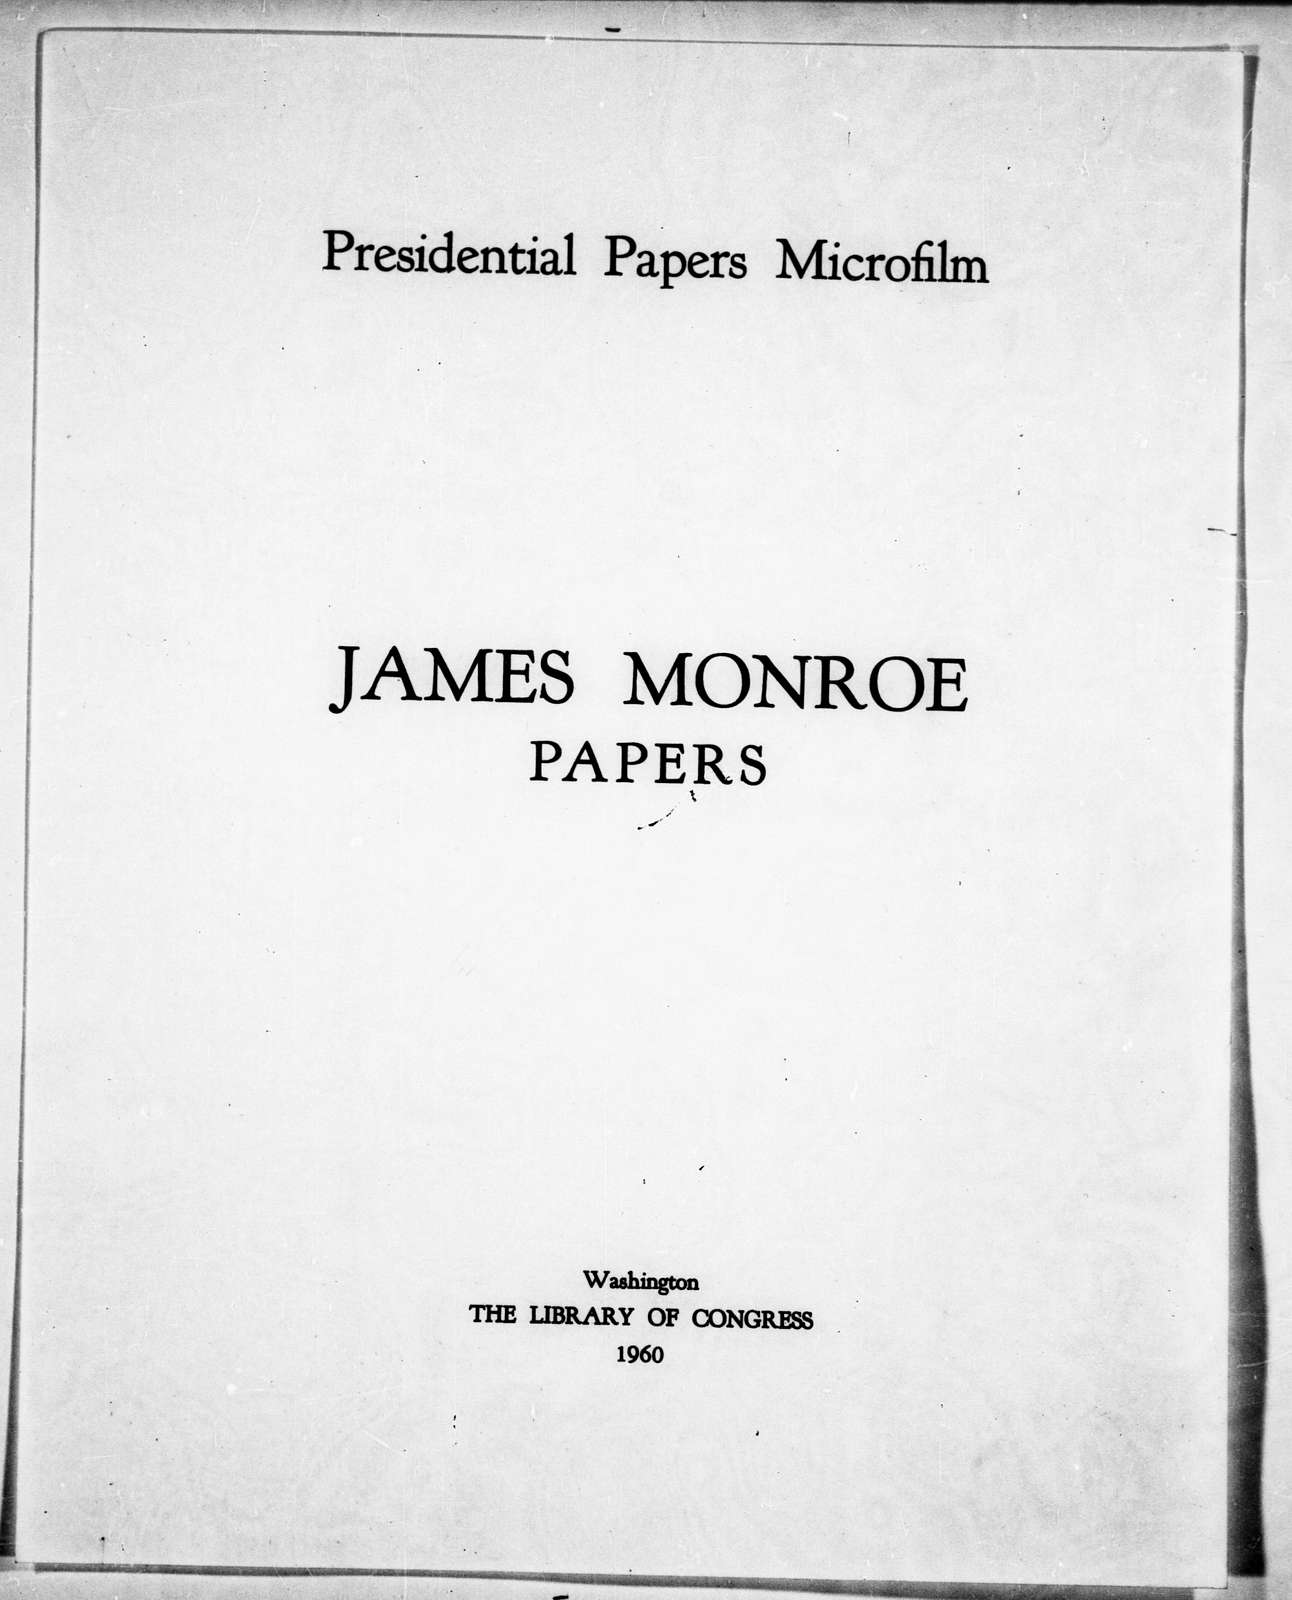 James Monroe Papers: Series 3, Letterbooks and Account Book, 1794-1806; Vol. 3, Journal-Account Book, 1794-1796, 1801-1802 (Reel 11)